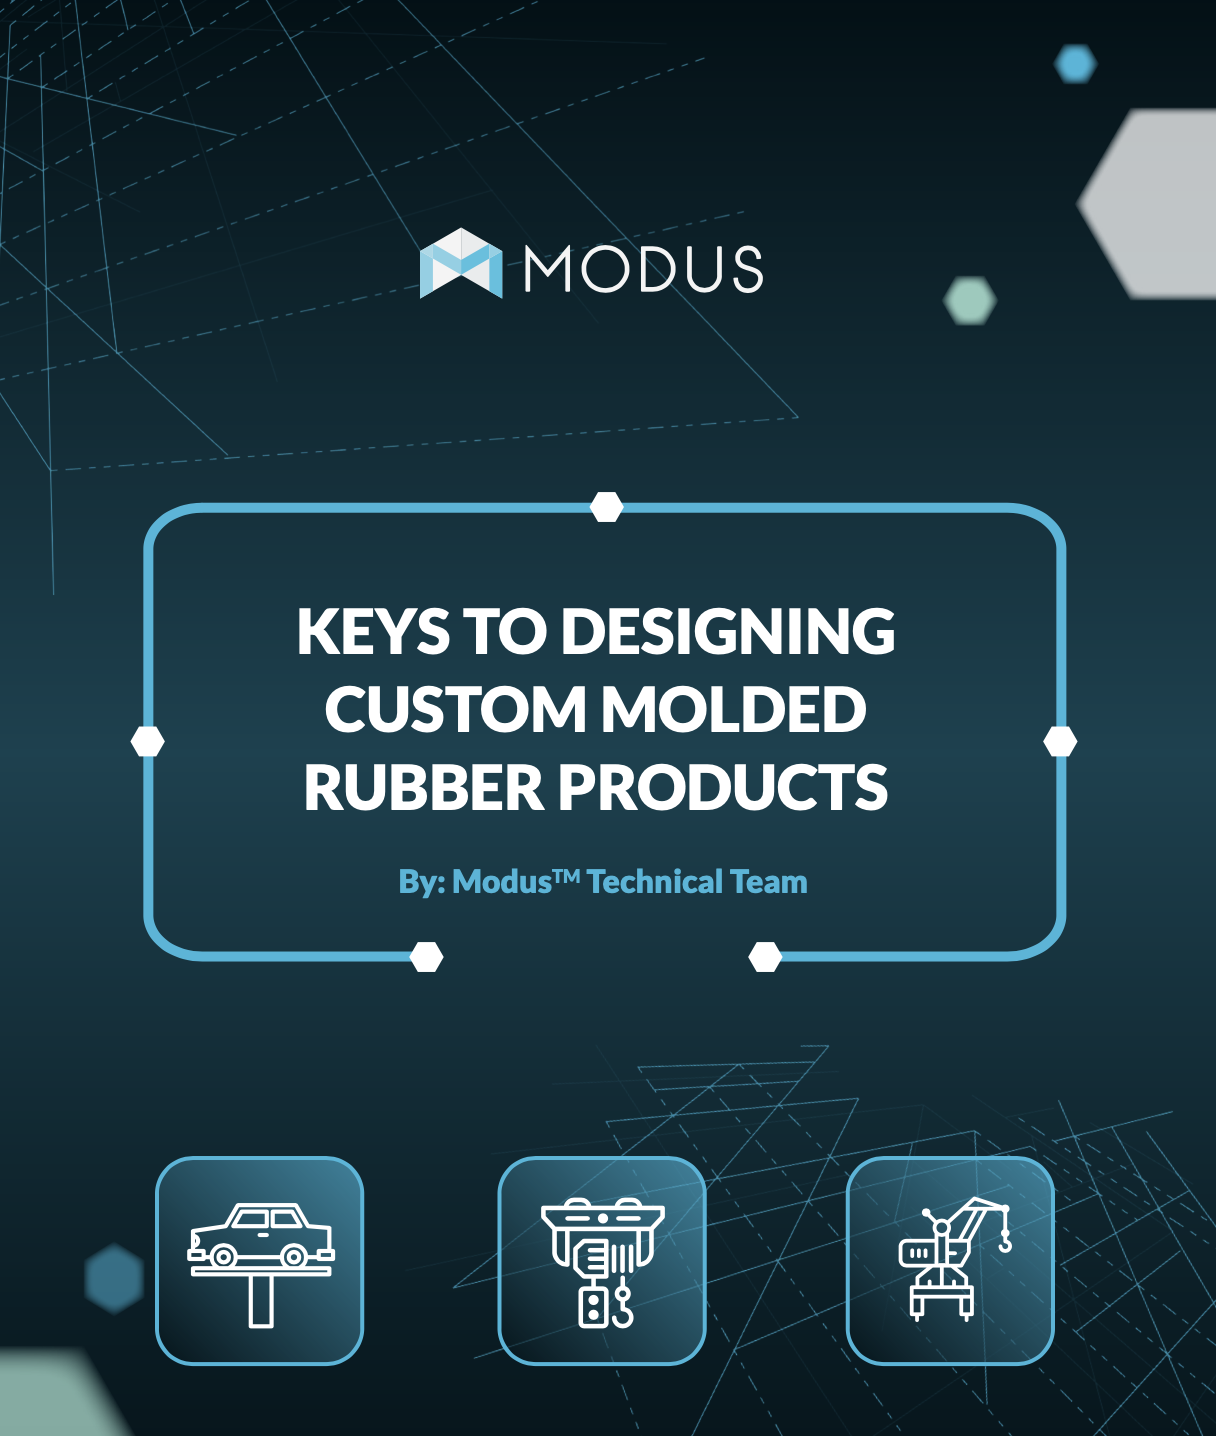 Keys to Designing Custom Molded Rubber Products